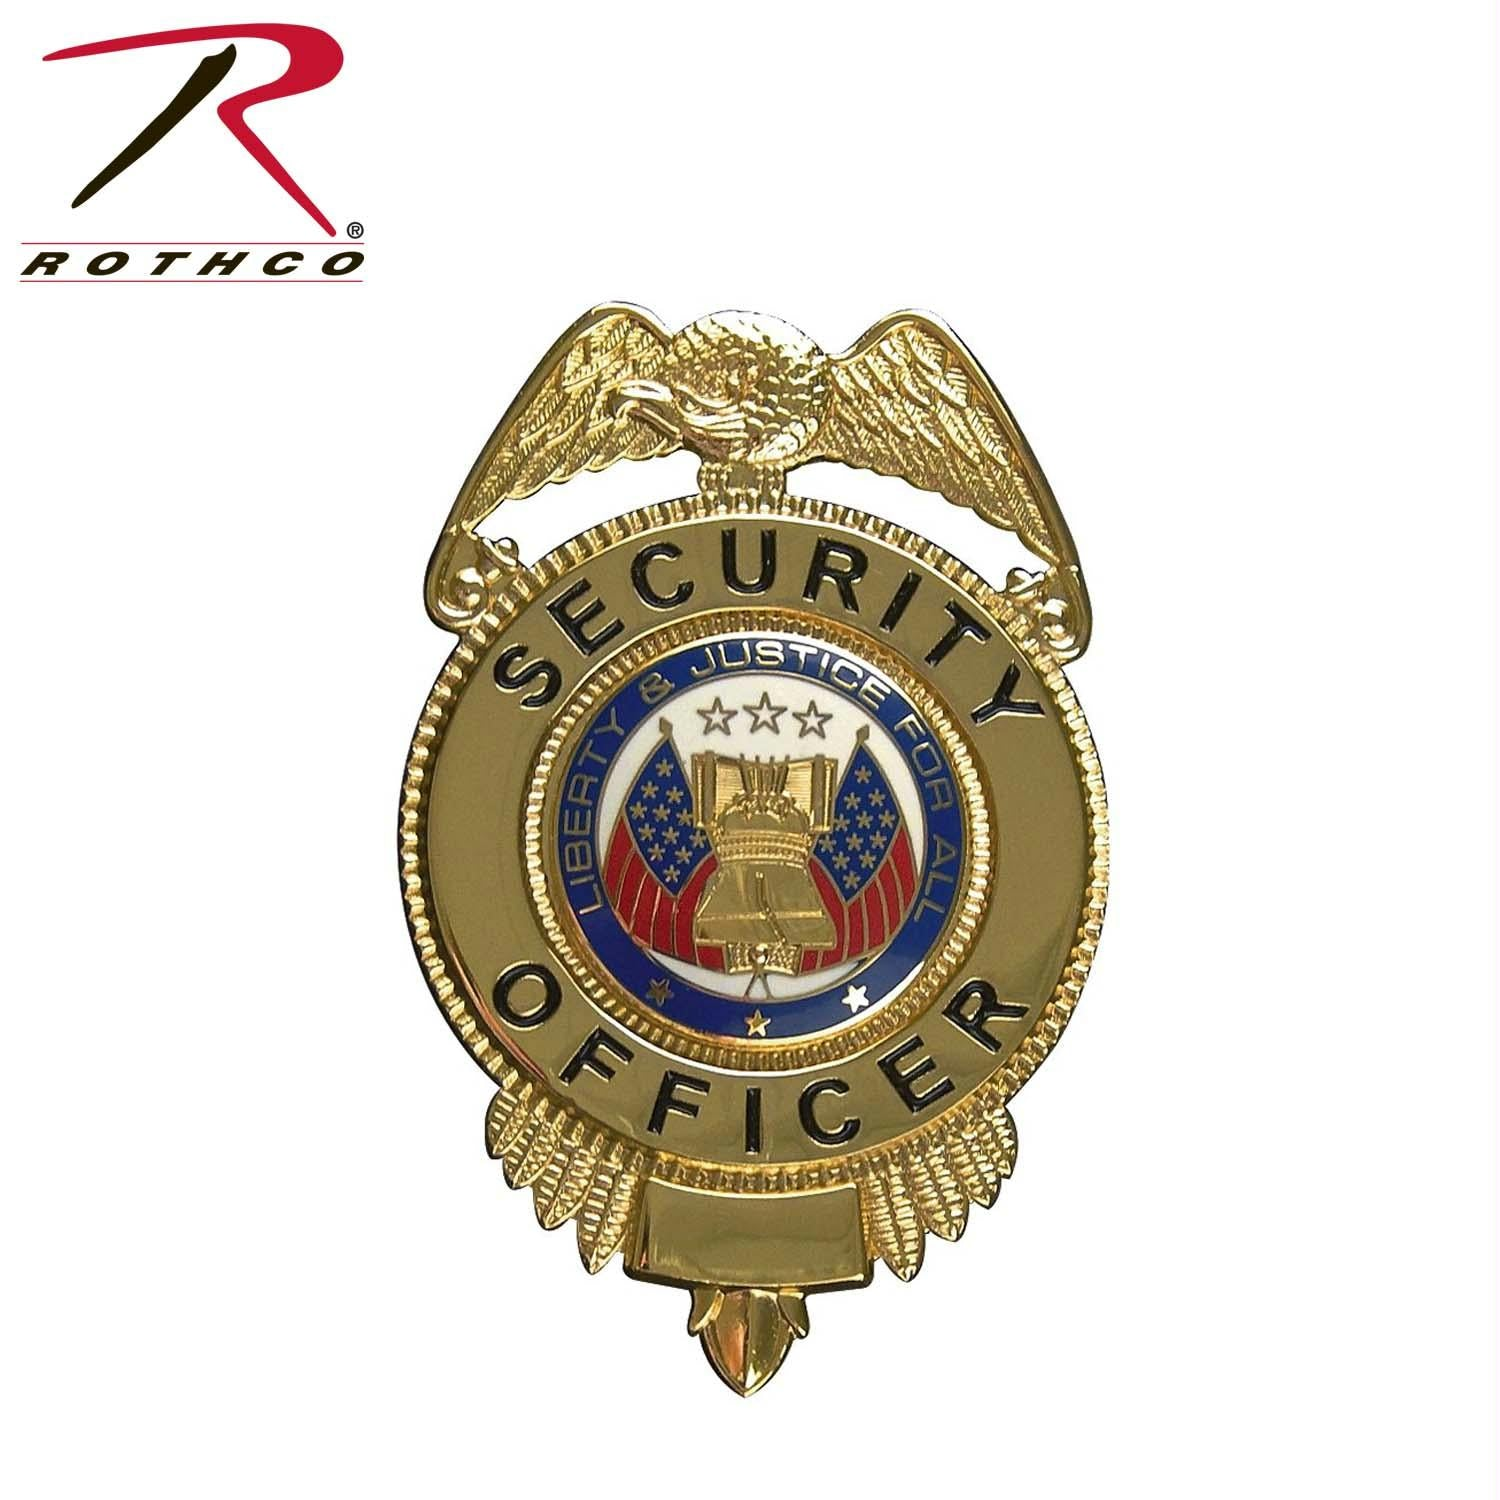 Rothco Security Officer Badge w/ Flags - Gold